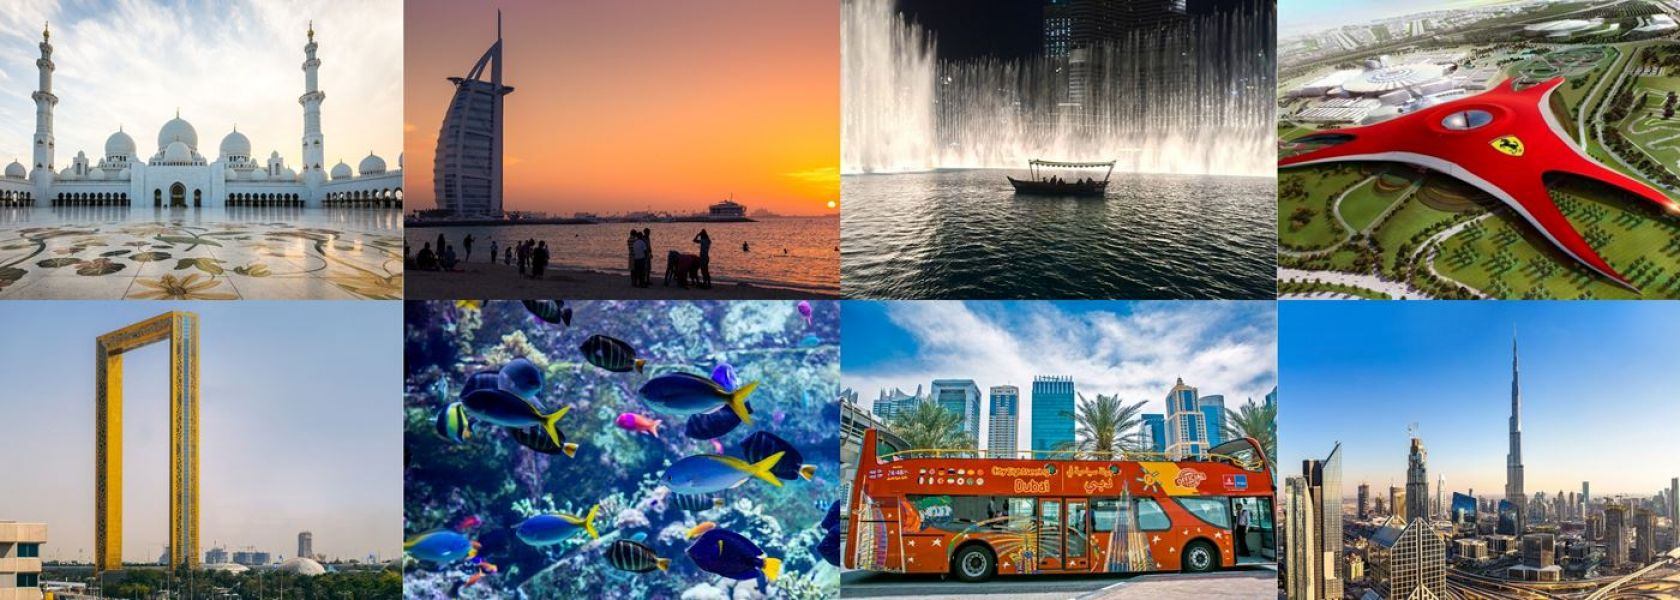 Abu dhabi city tour @30% Off | Summer In AbuDhabi | Get Your Deal Now